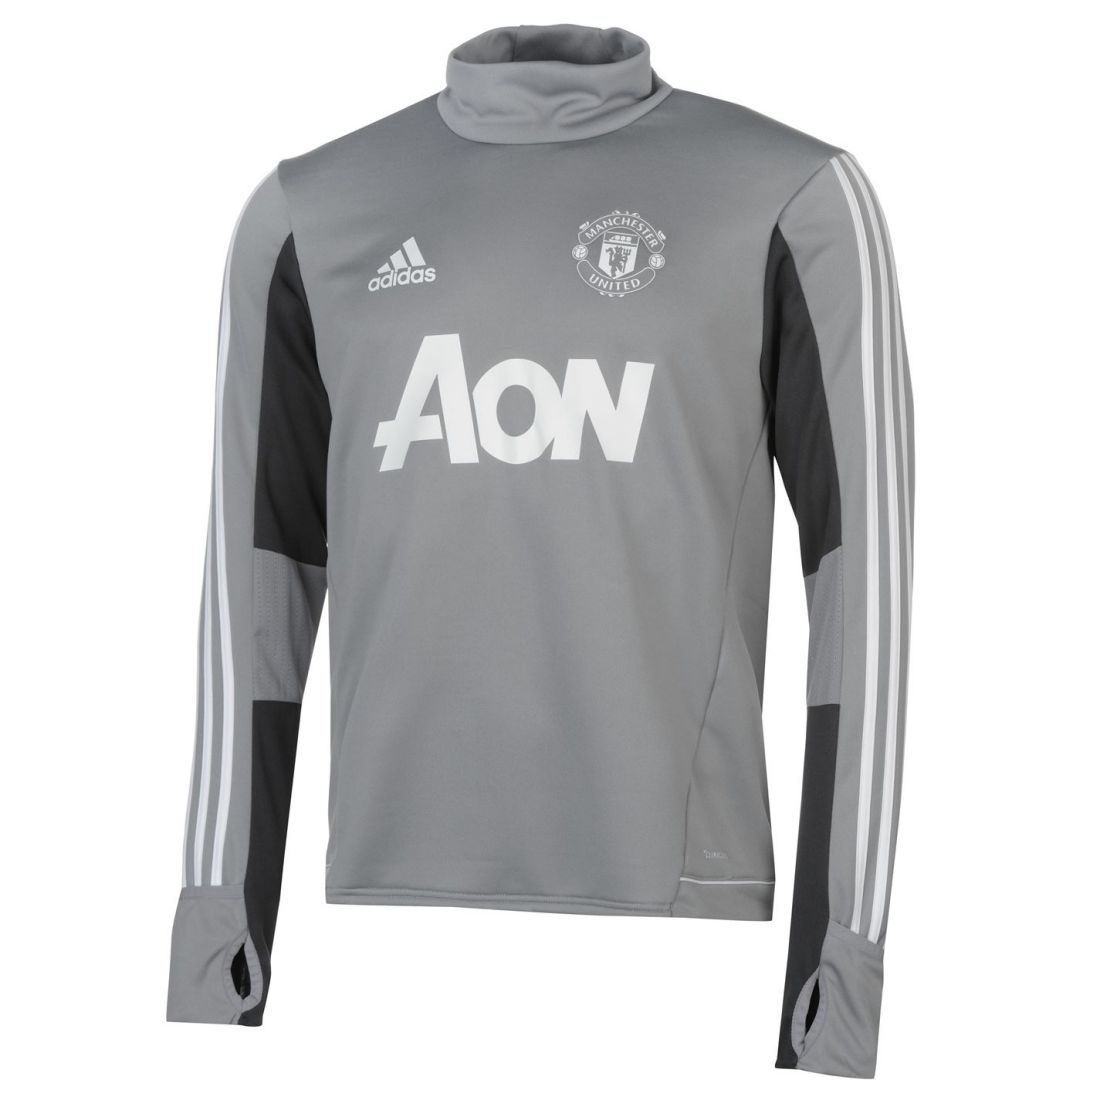 1c0a8570072 Image is loading adidas-Mens-Gents-Manchester-United-Training-Shirt-Top-